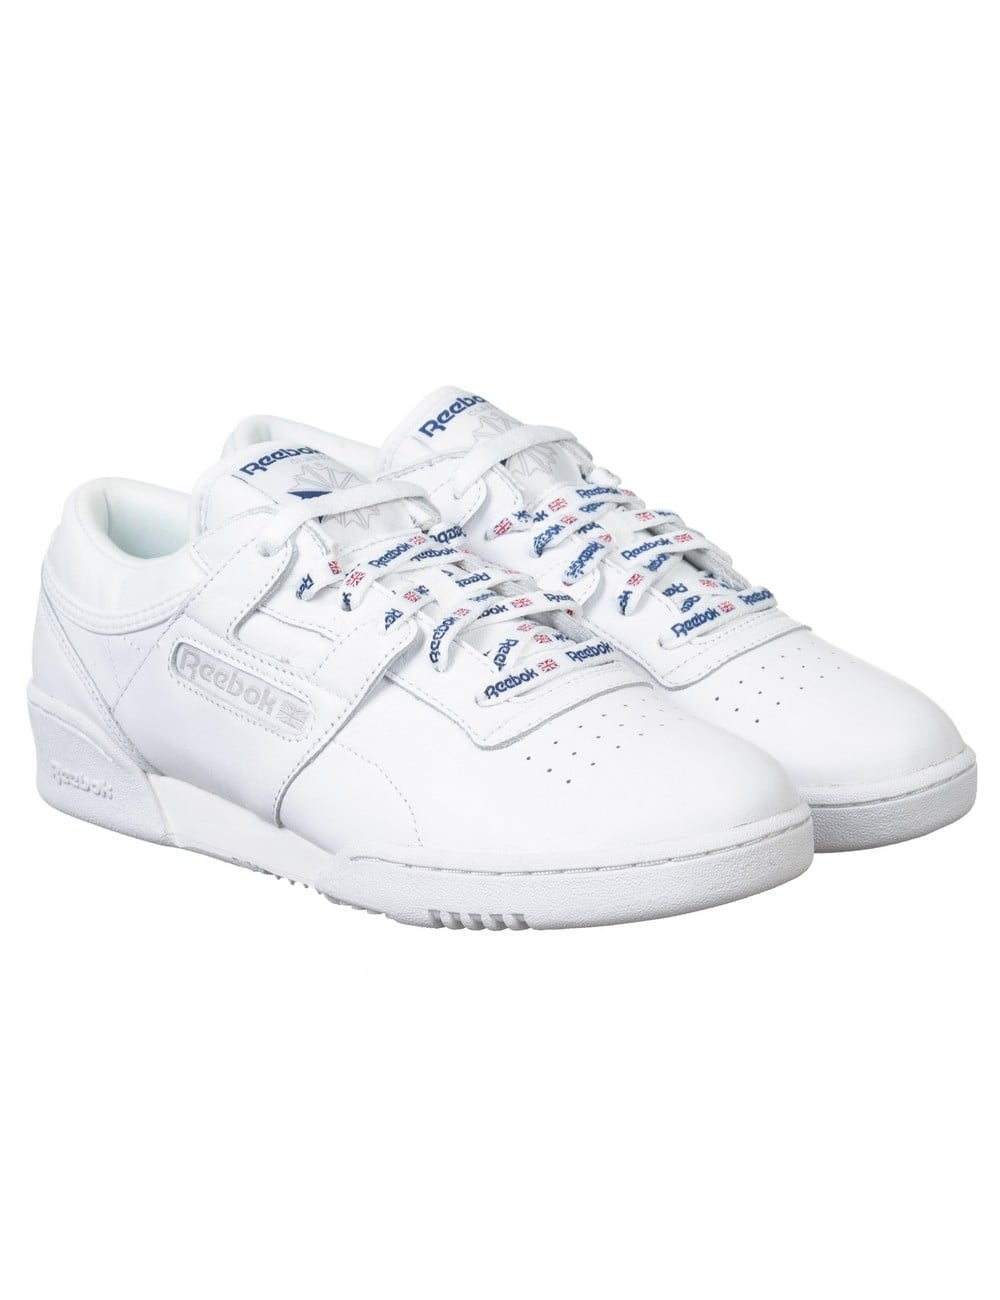 Reebok Workout Lo CL Nylon Shoes - White - Footwear From ...